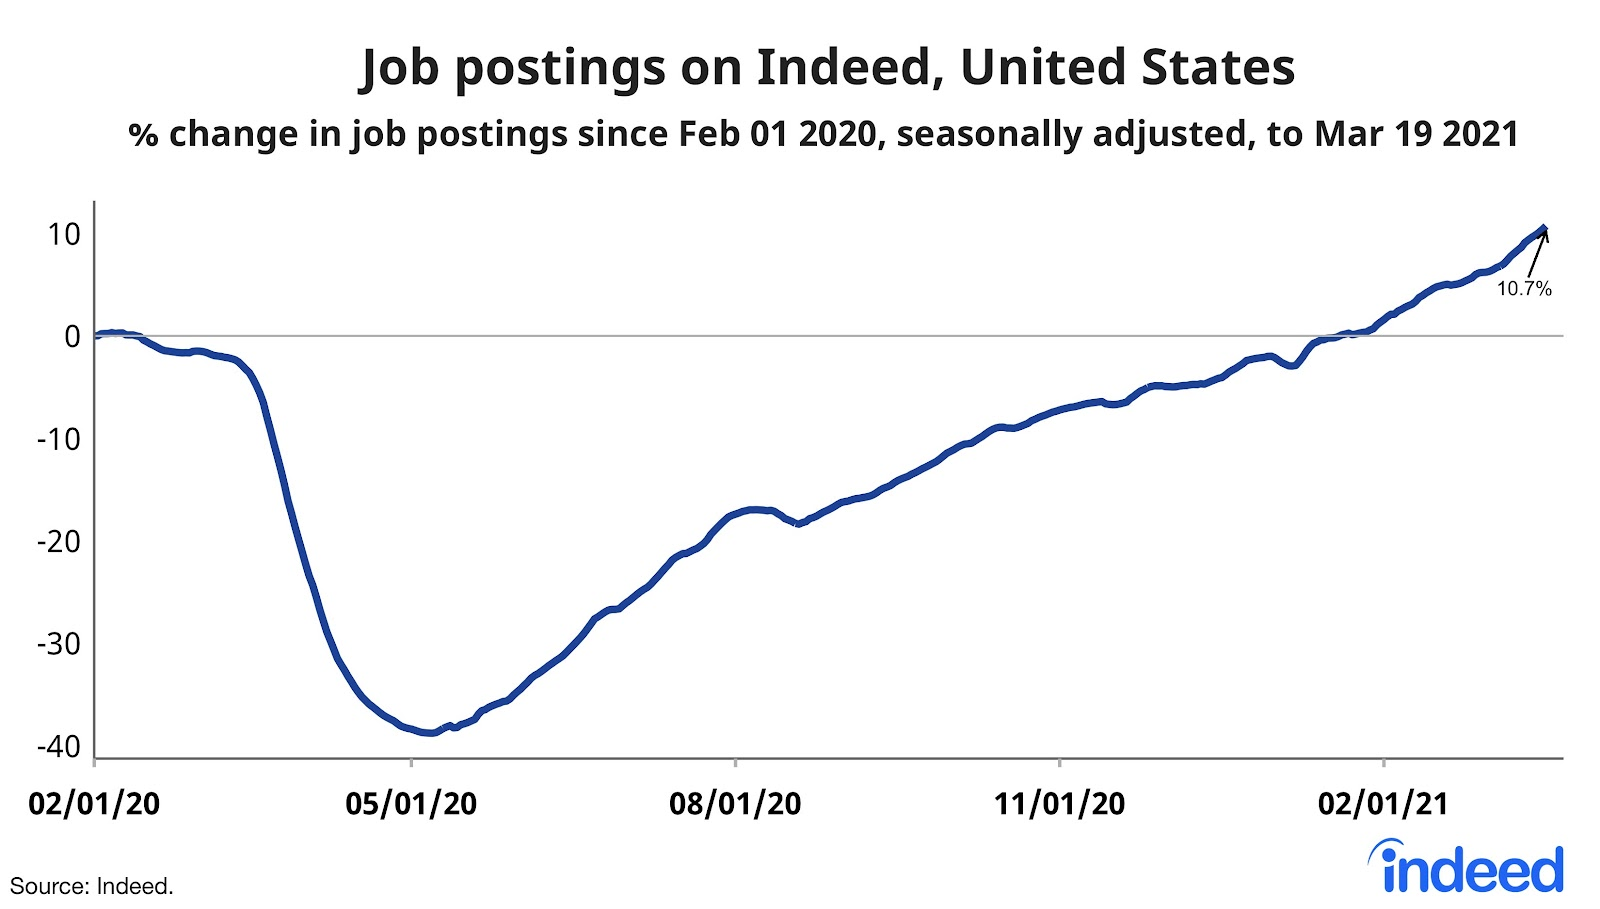 Job postings on Indeed in the United States are up about 10% YoY from pre-COVID months in early 2020.